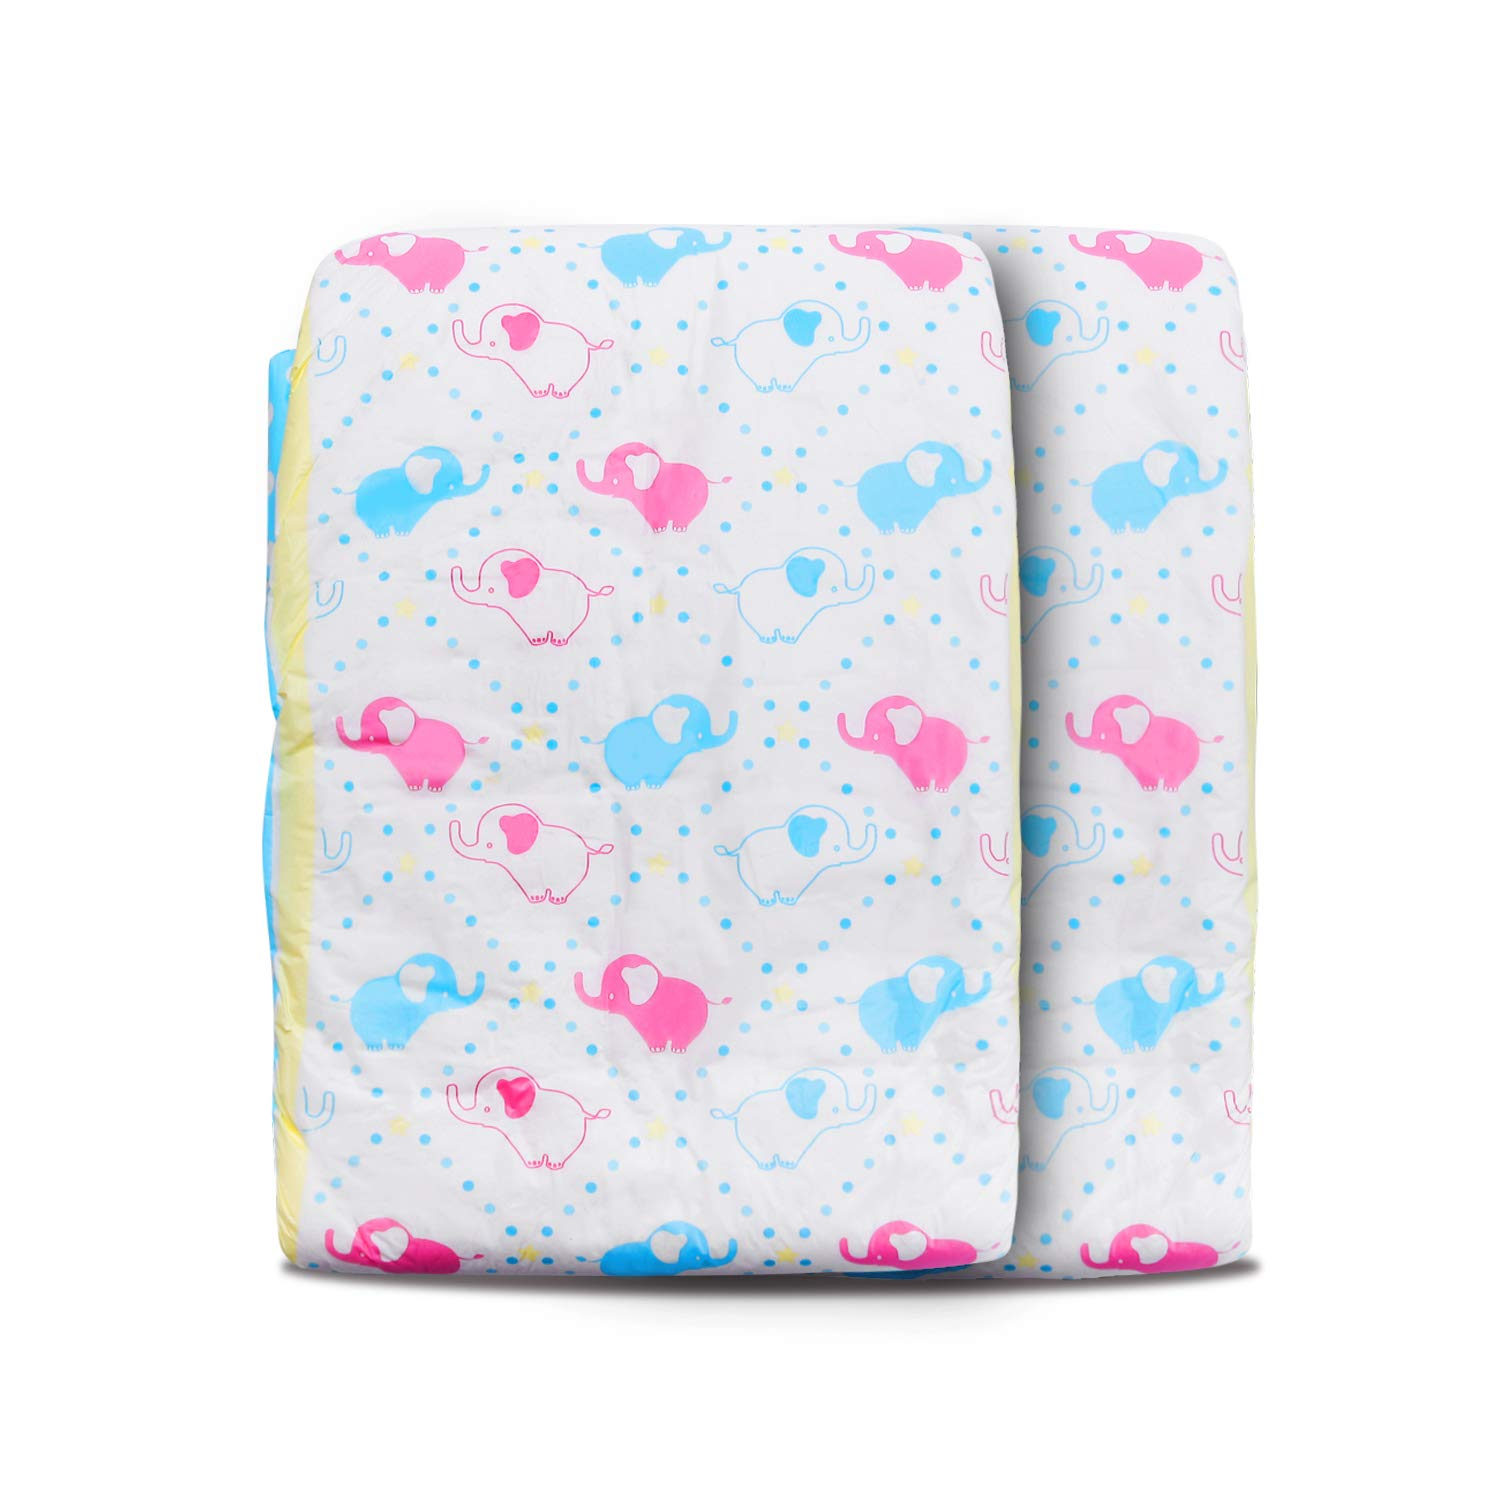 LittleForBig Printed Adult Brief Diapers 2 Pieces-Little Trunks Medium